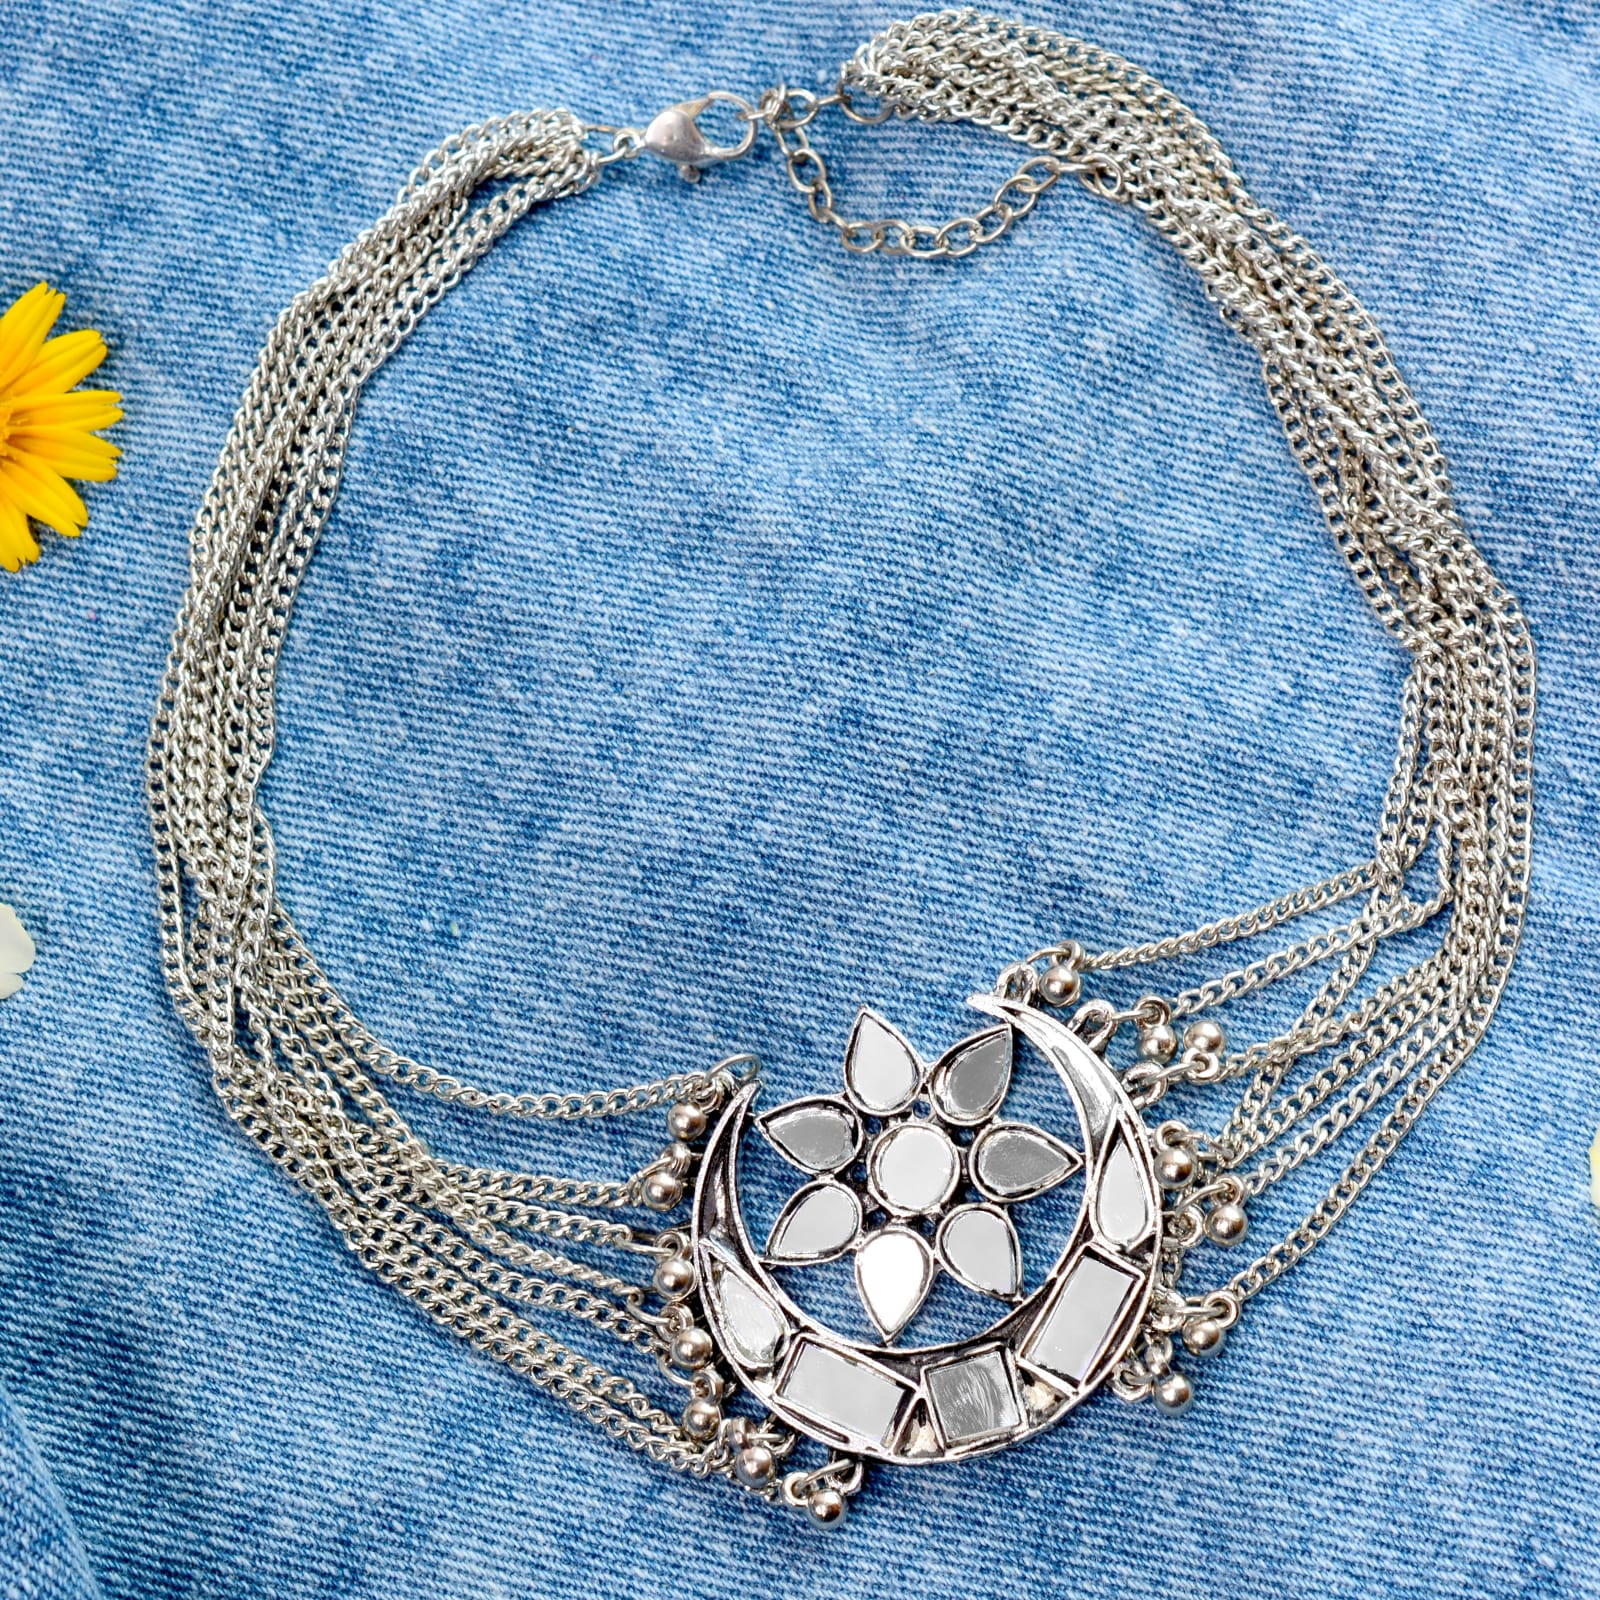 Palak Silver Oxidized Mirror Necklace - Teejh